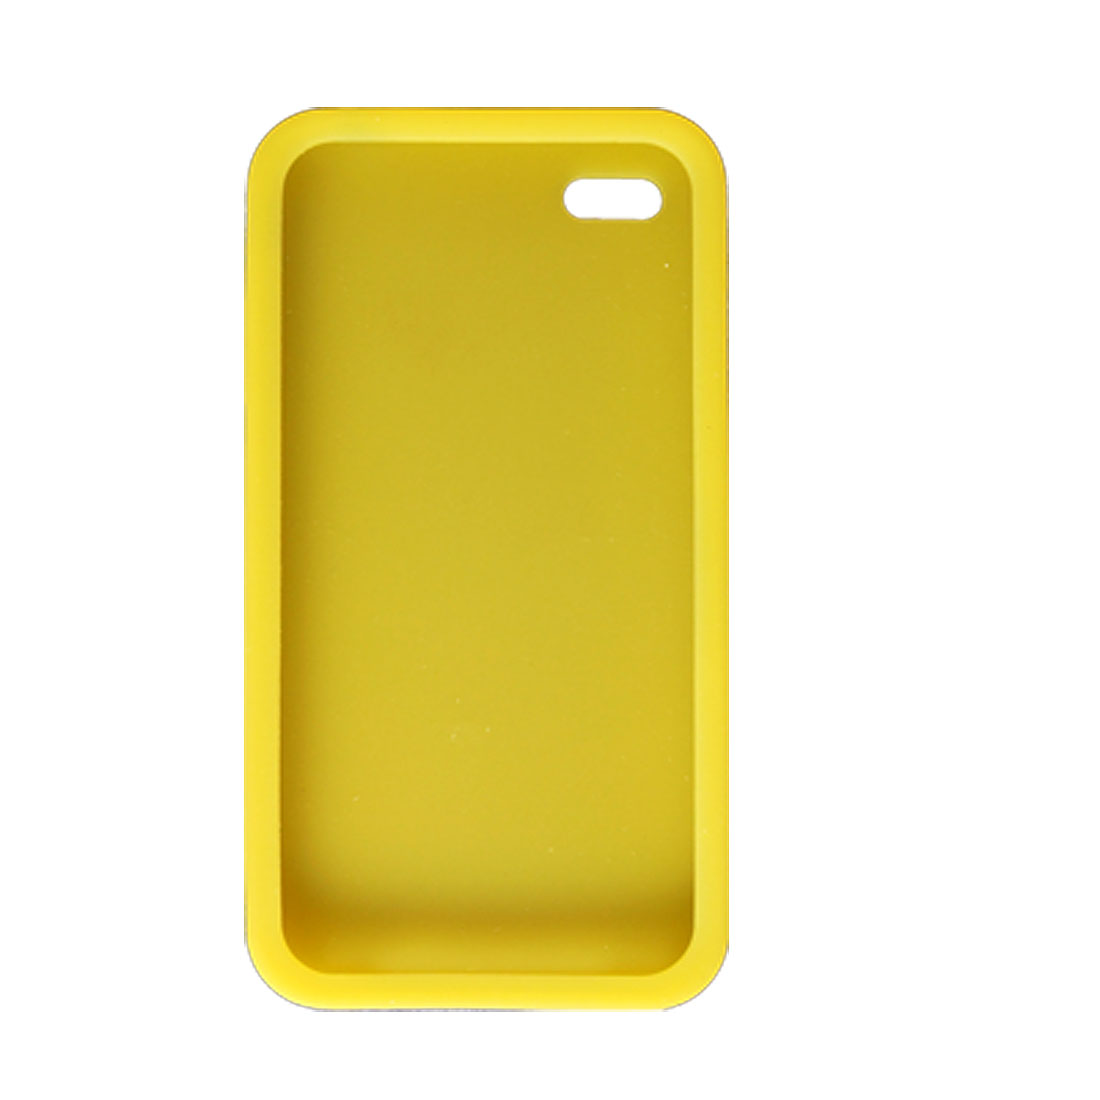 For Apple iPhone 4 4G Soft Silicone Skin Cover Case Shell Yellow